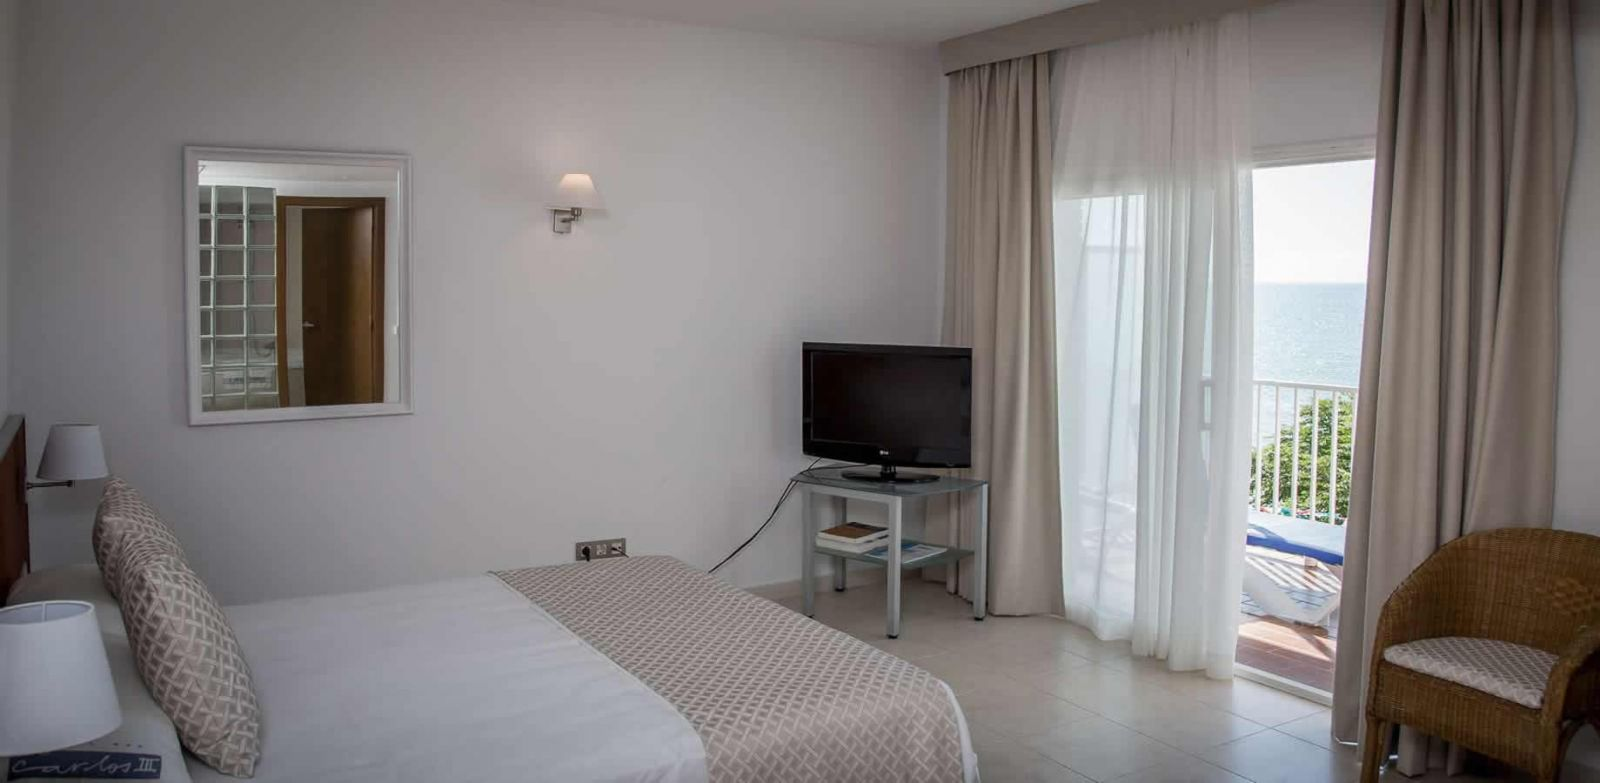 Montsia Suite Room at the Carlos III Hotel in Alcanar - San Carlos de la Rapita - the Ebro Delta